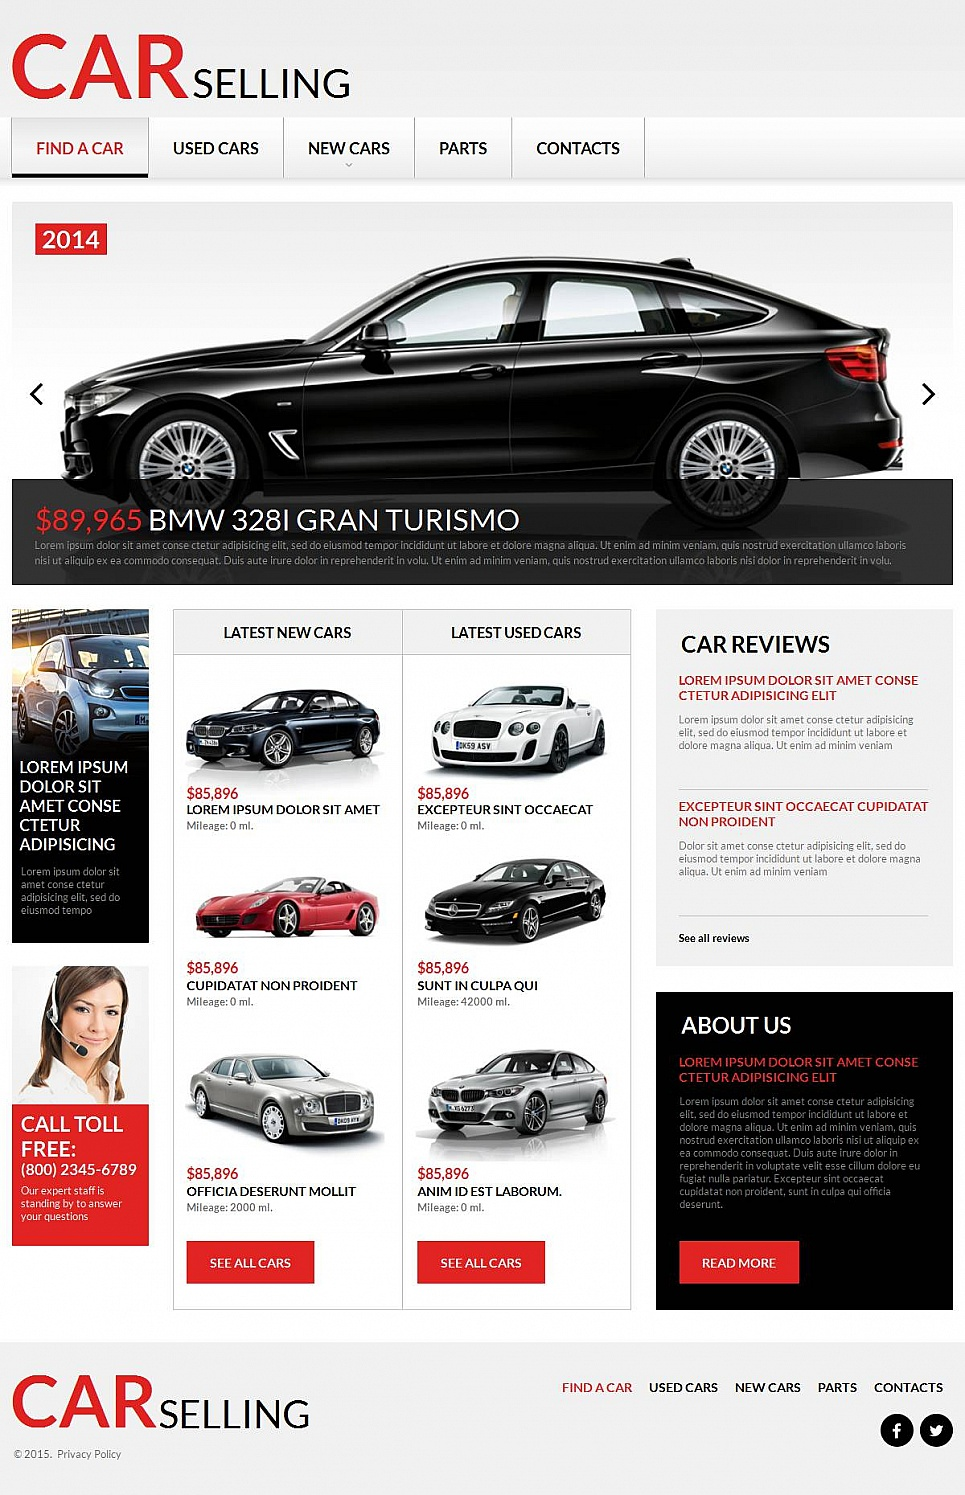 Car Selling Website Design - image